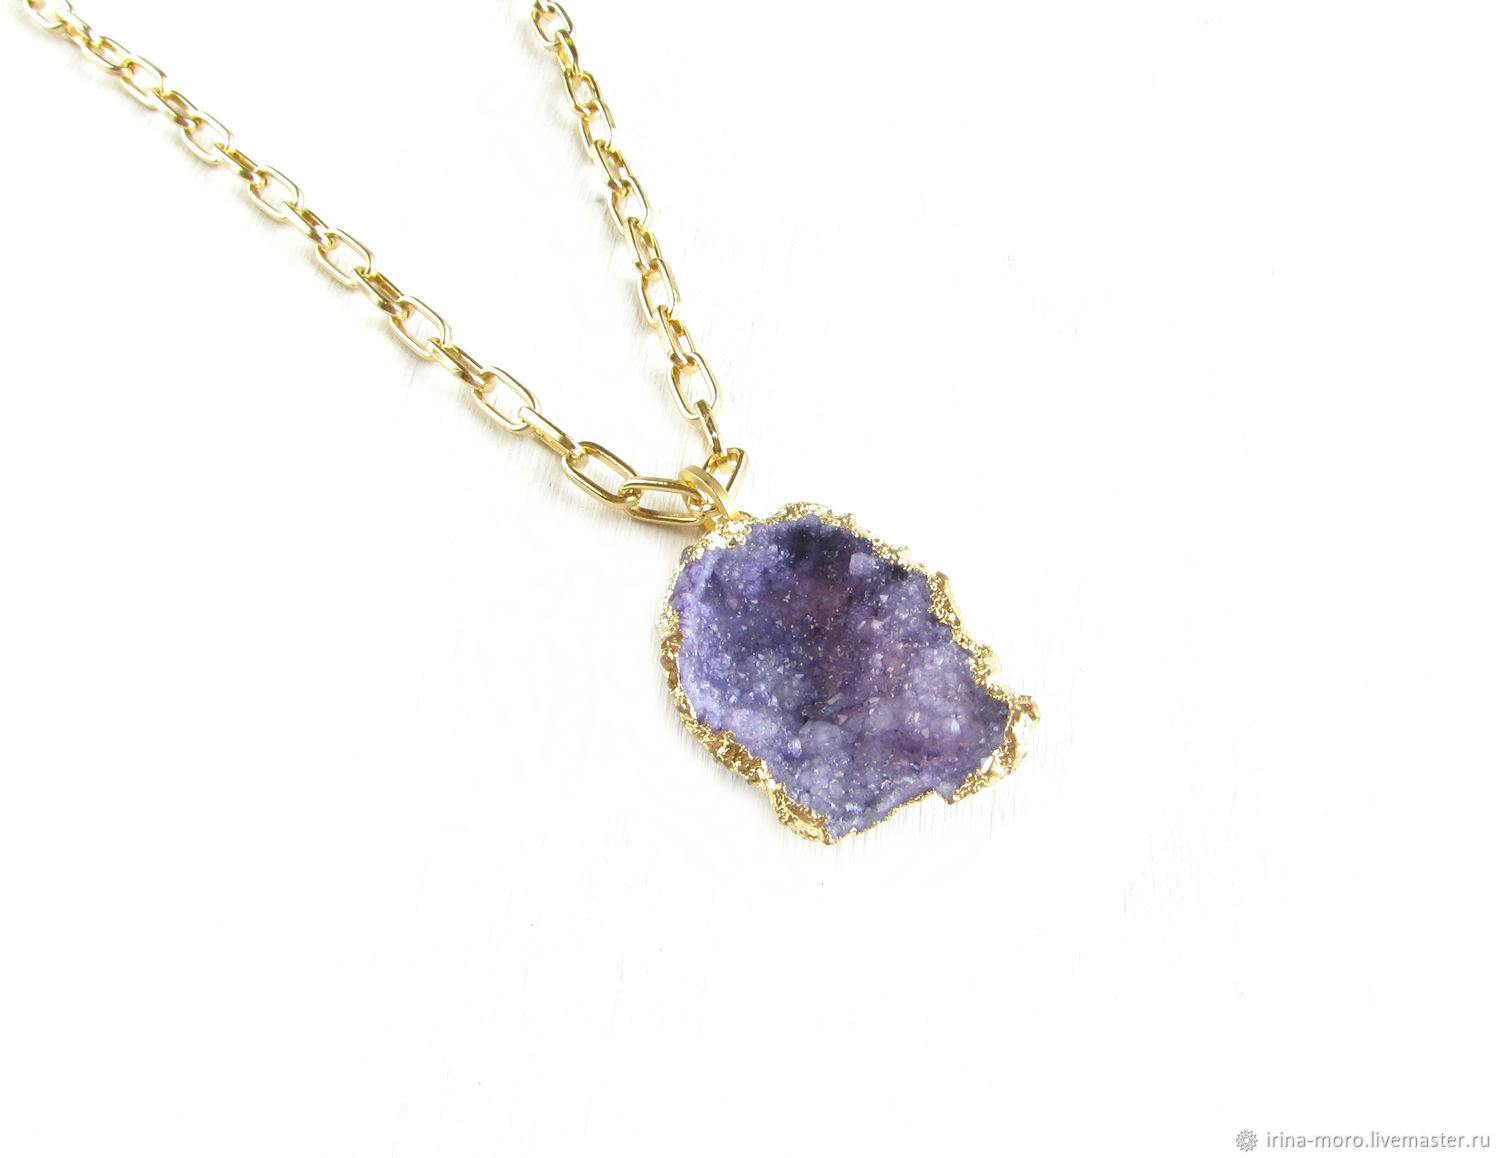 Pendant with Druze agate 'Crocus Petal' purple pendant, Pendants, Moscow,  Фото №1